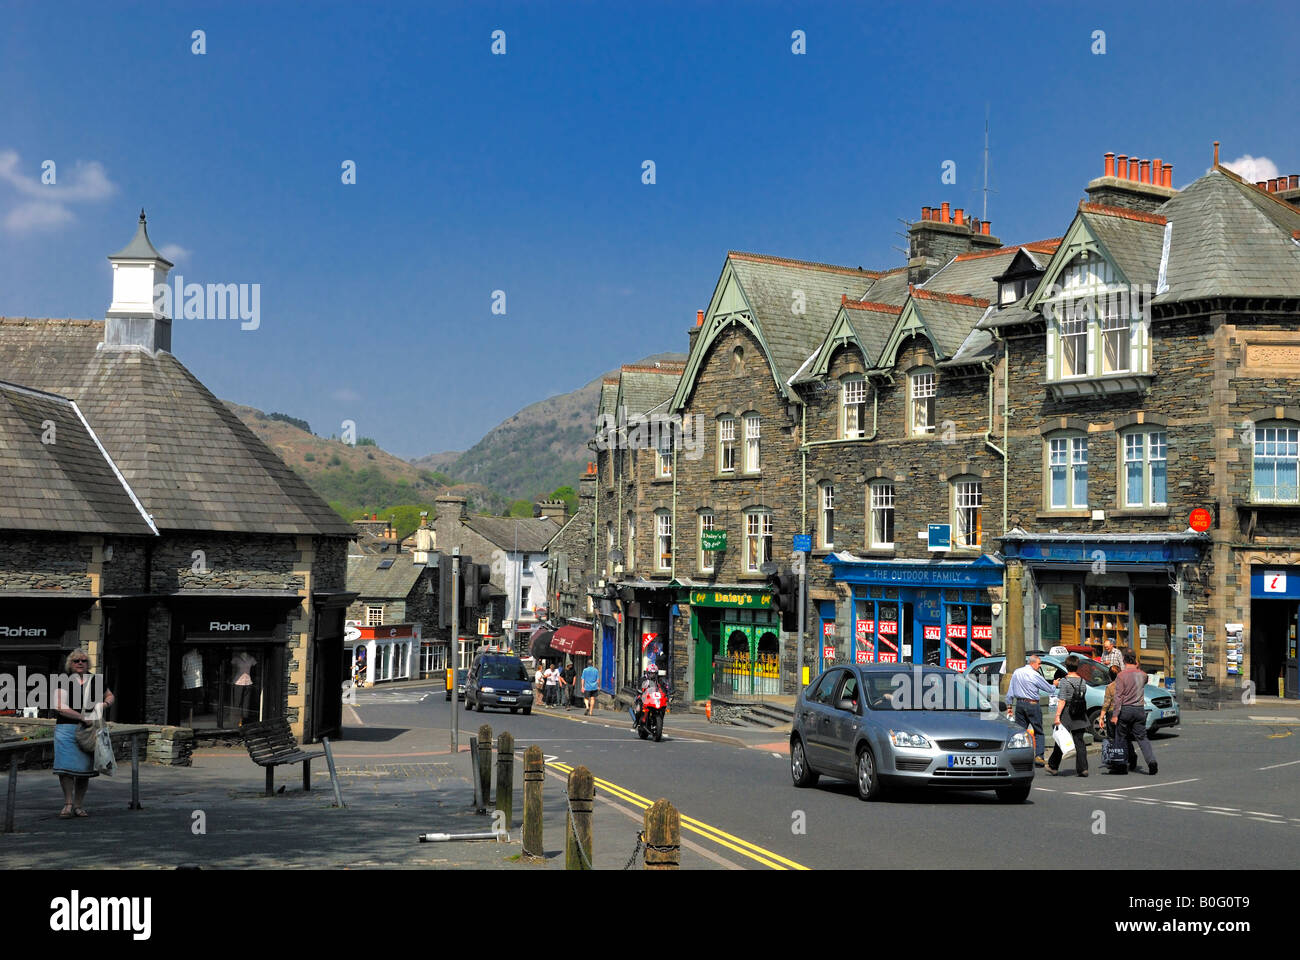 Hotels In Ambleside Uk